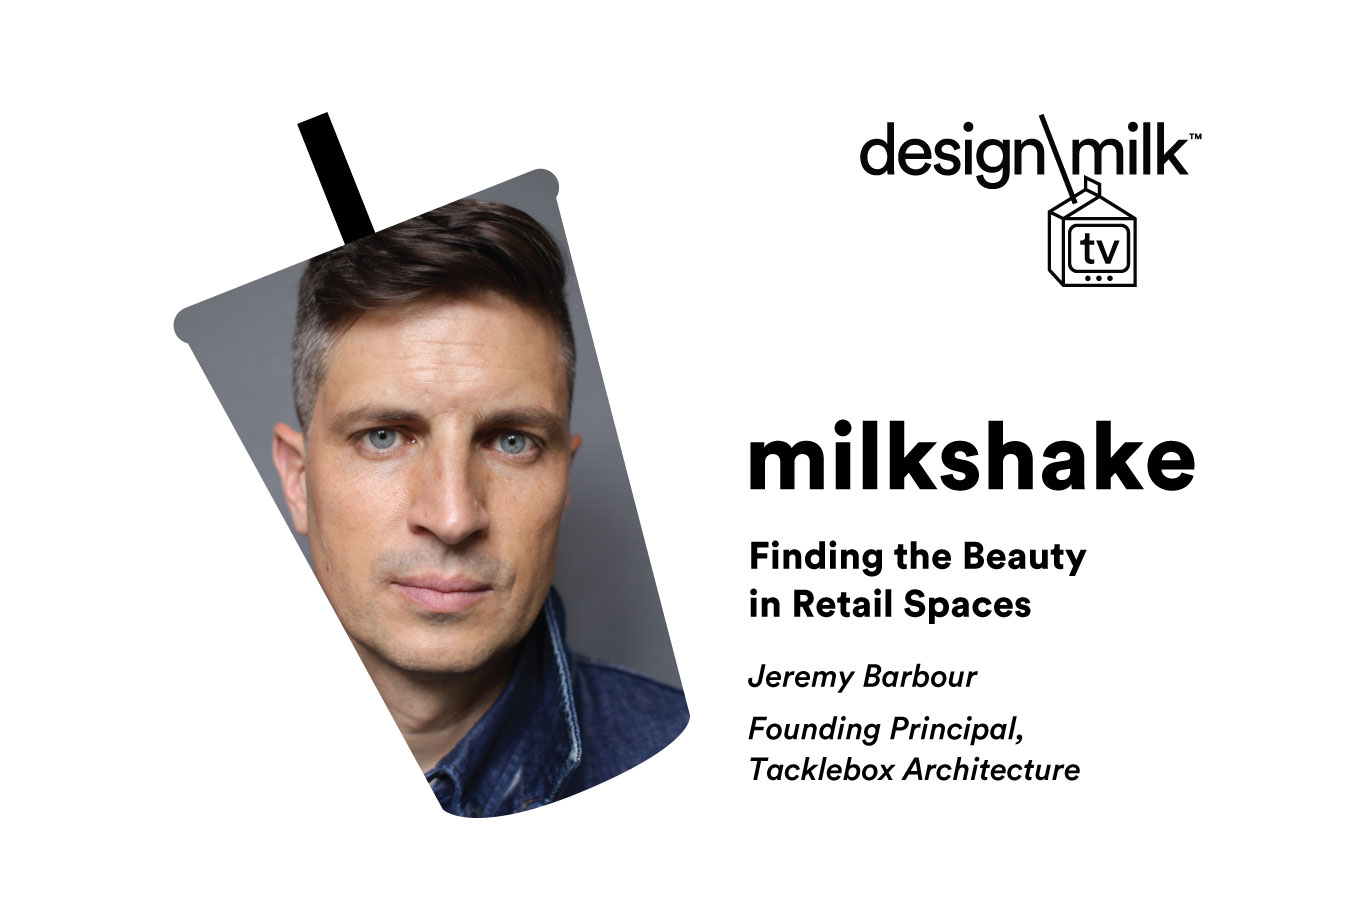 DMTV Milkshake: Jeremy Barbour Finds the Beauty in Retail Spaces